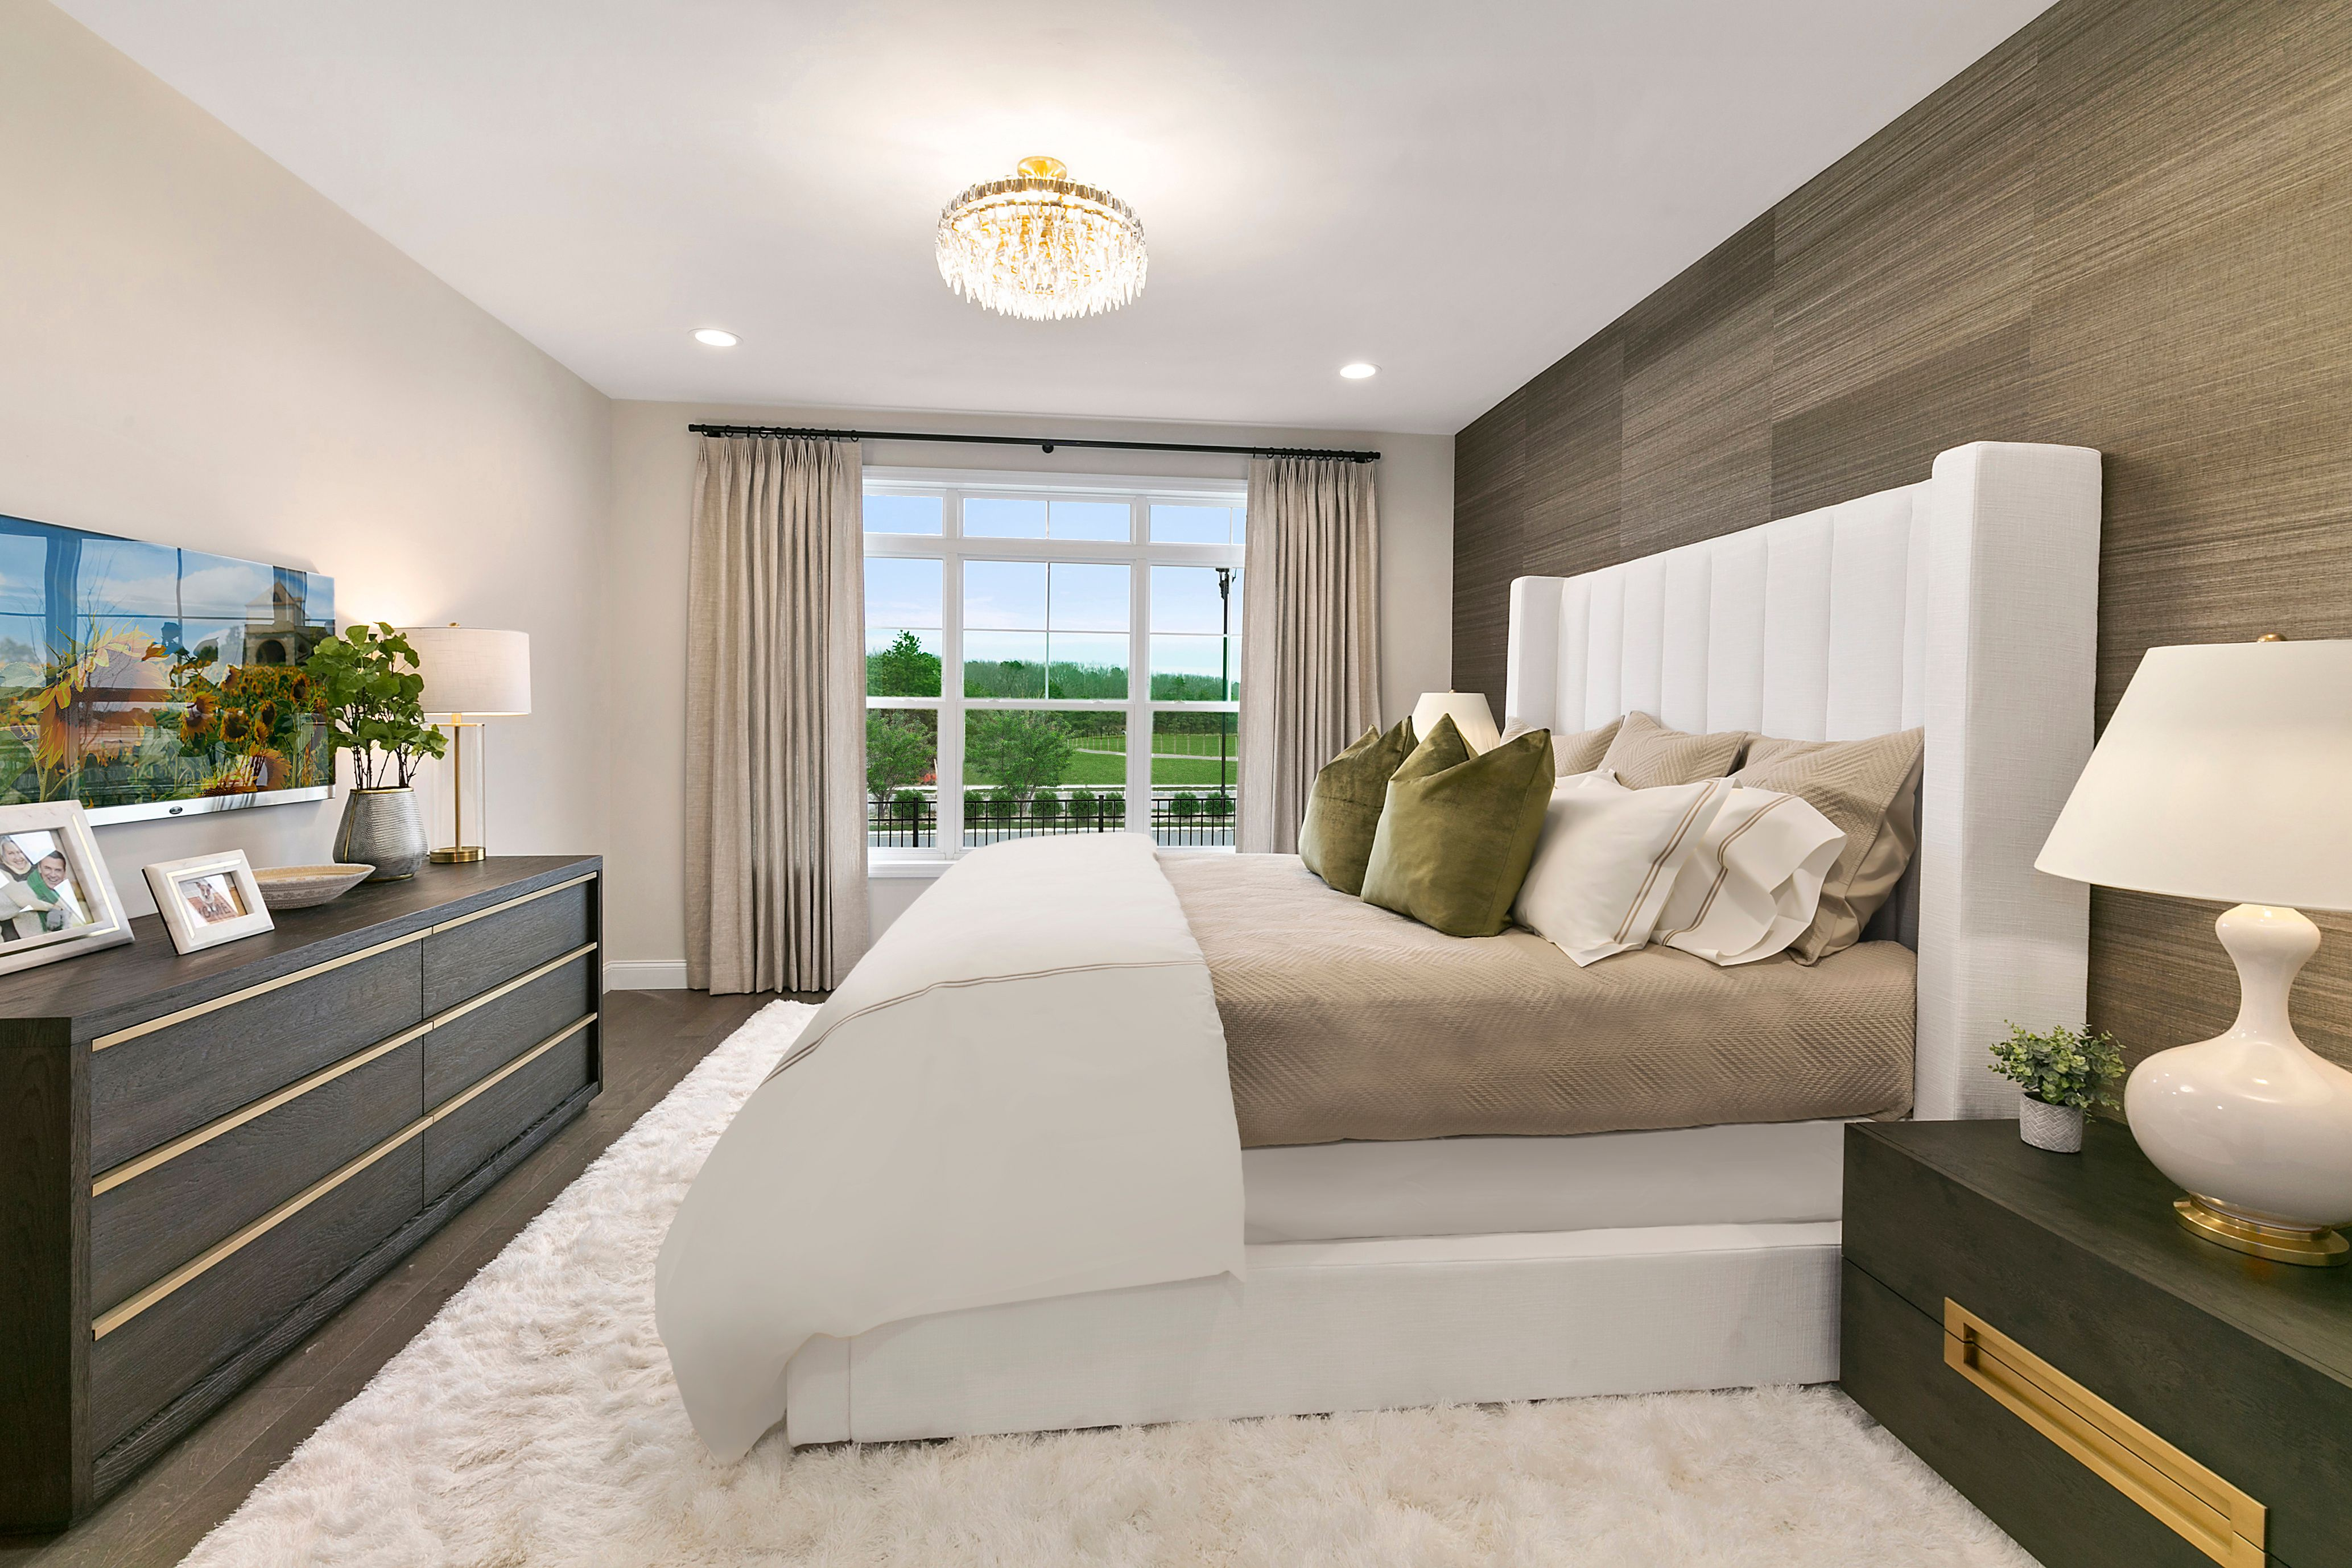 Bedroom featured in The Fairlawn By Beechwood Homes in Nassau-Suffolk, NY